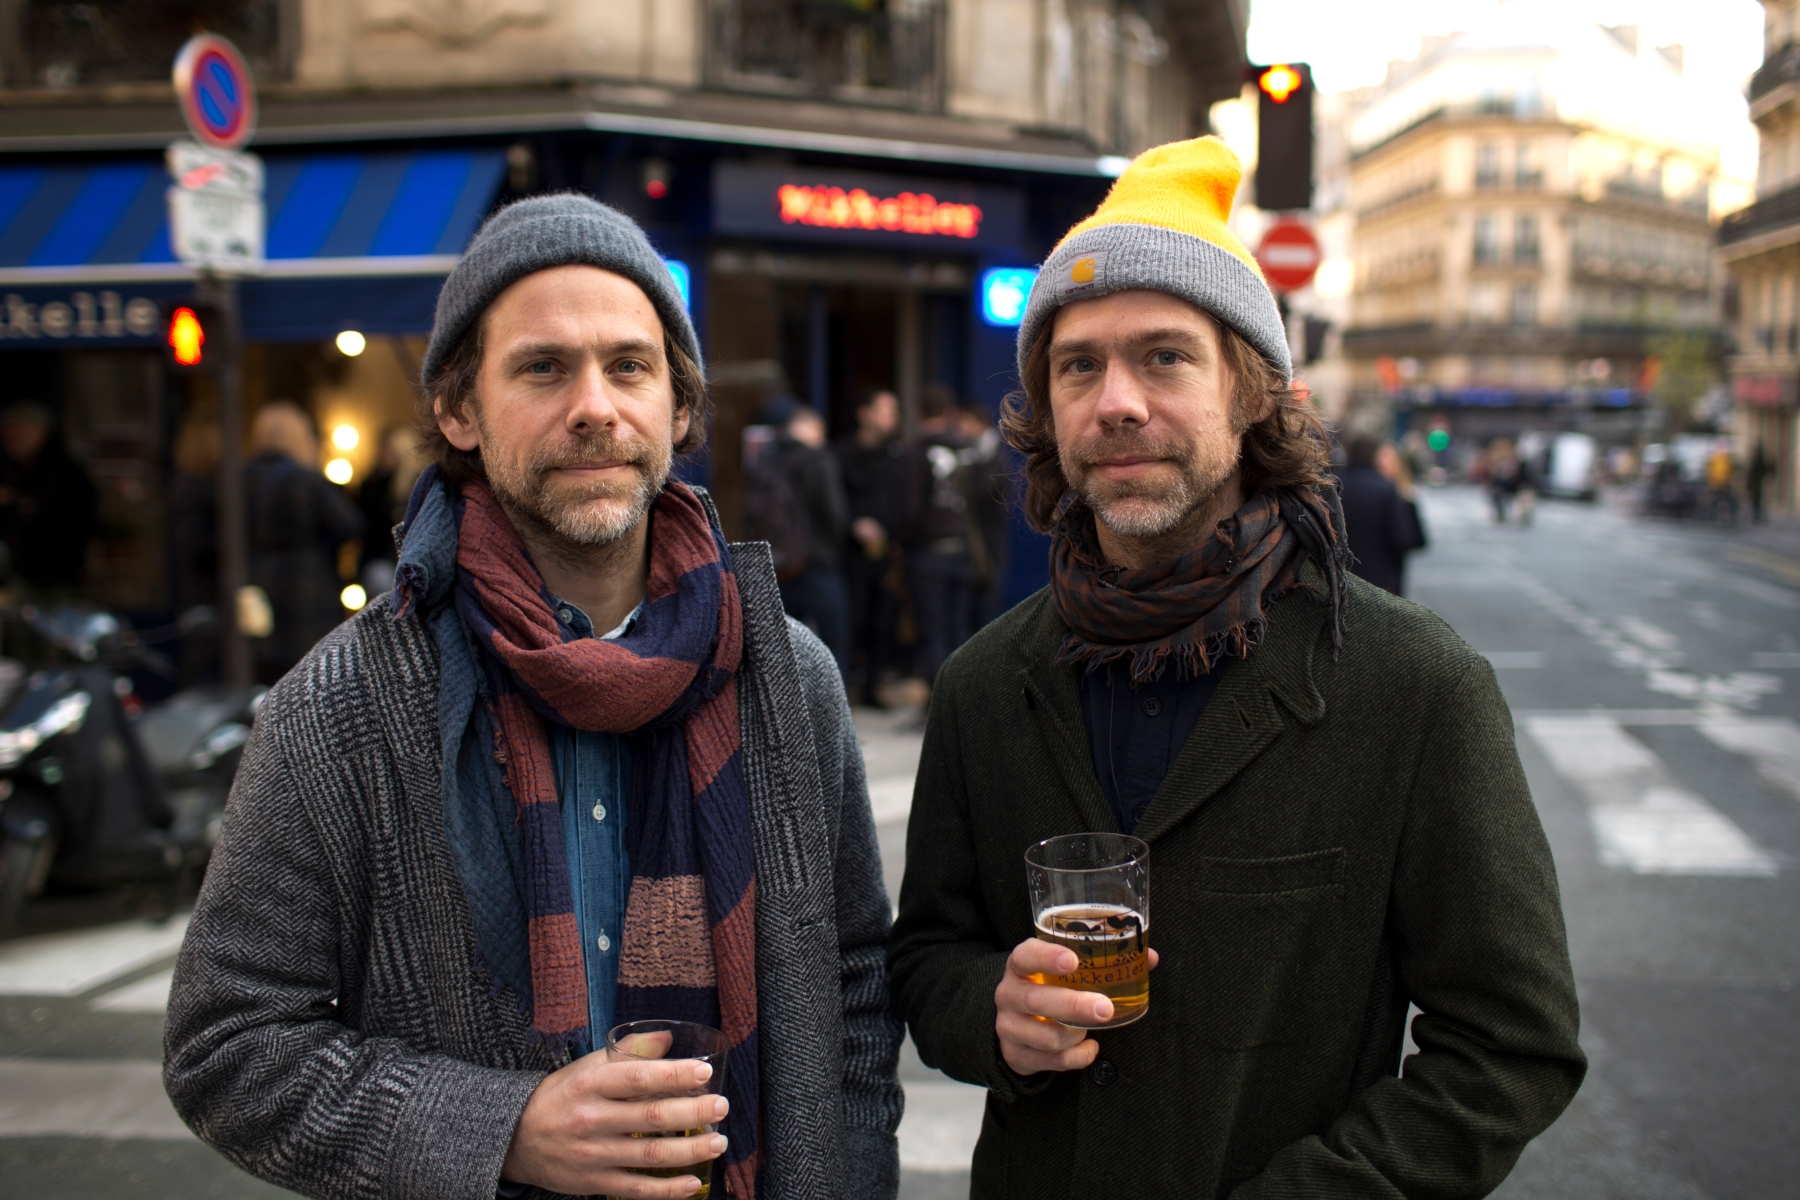 The Dessner brothers have a beer outside their new bar in Paris